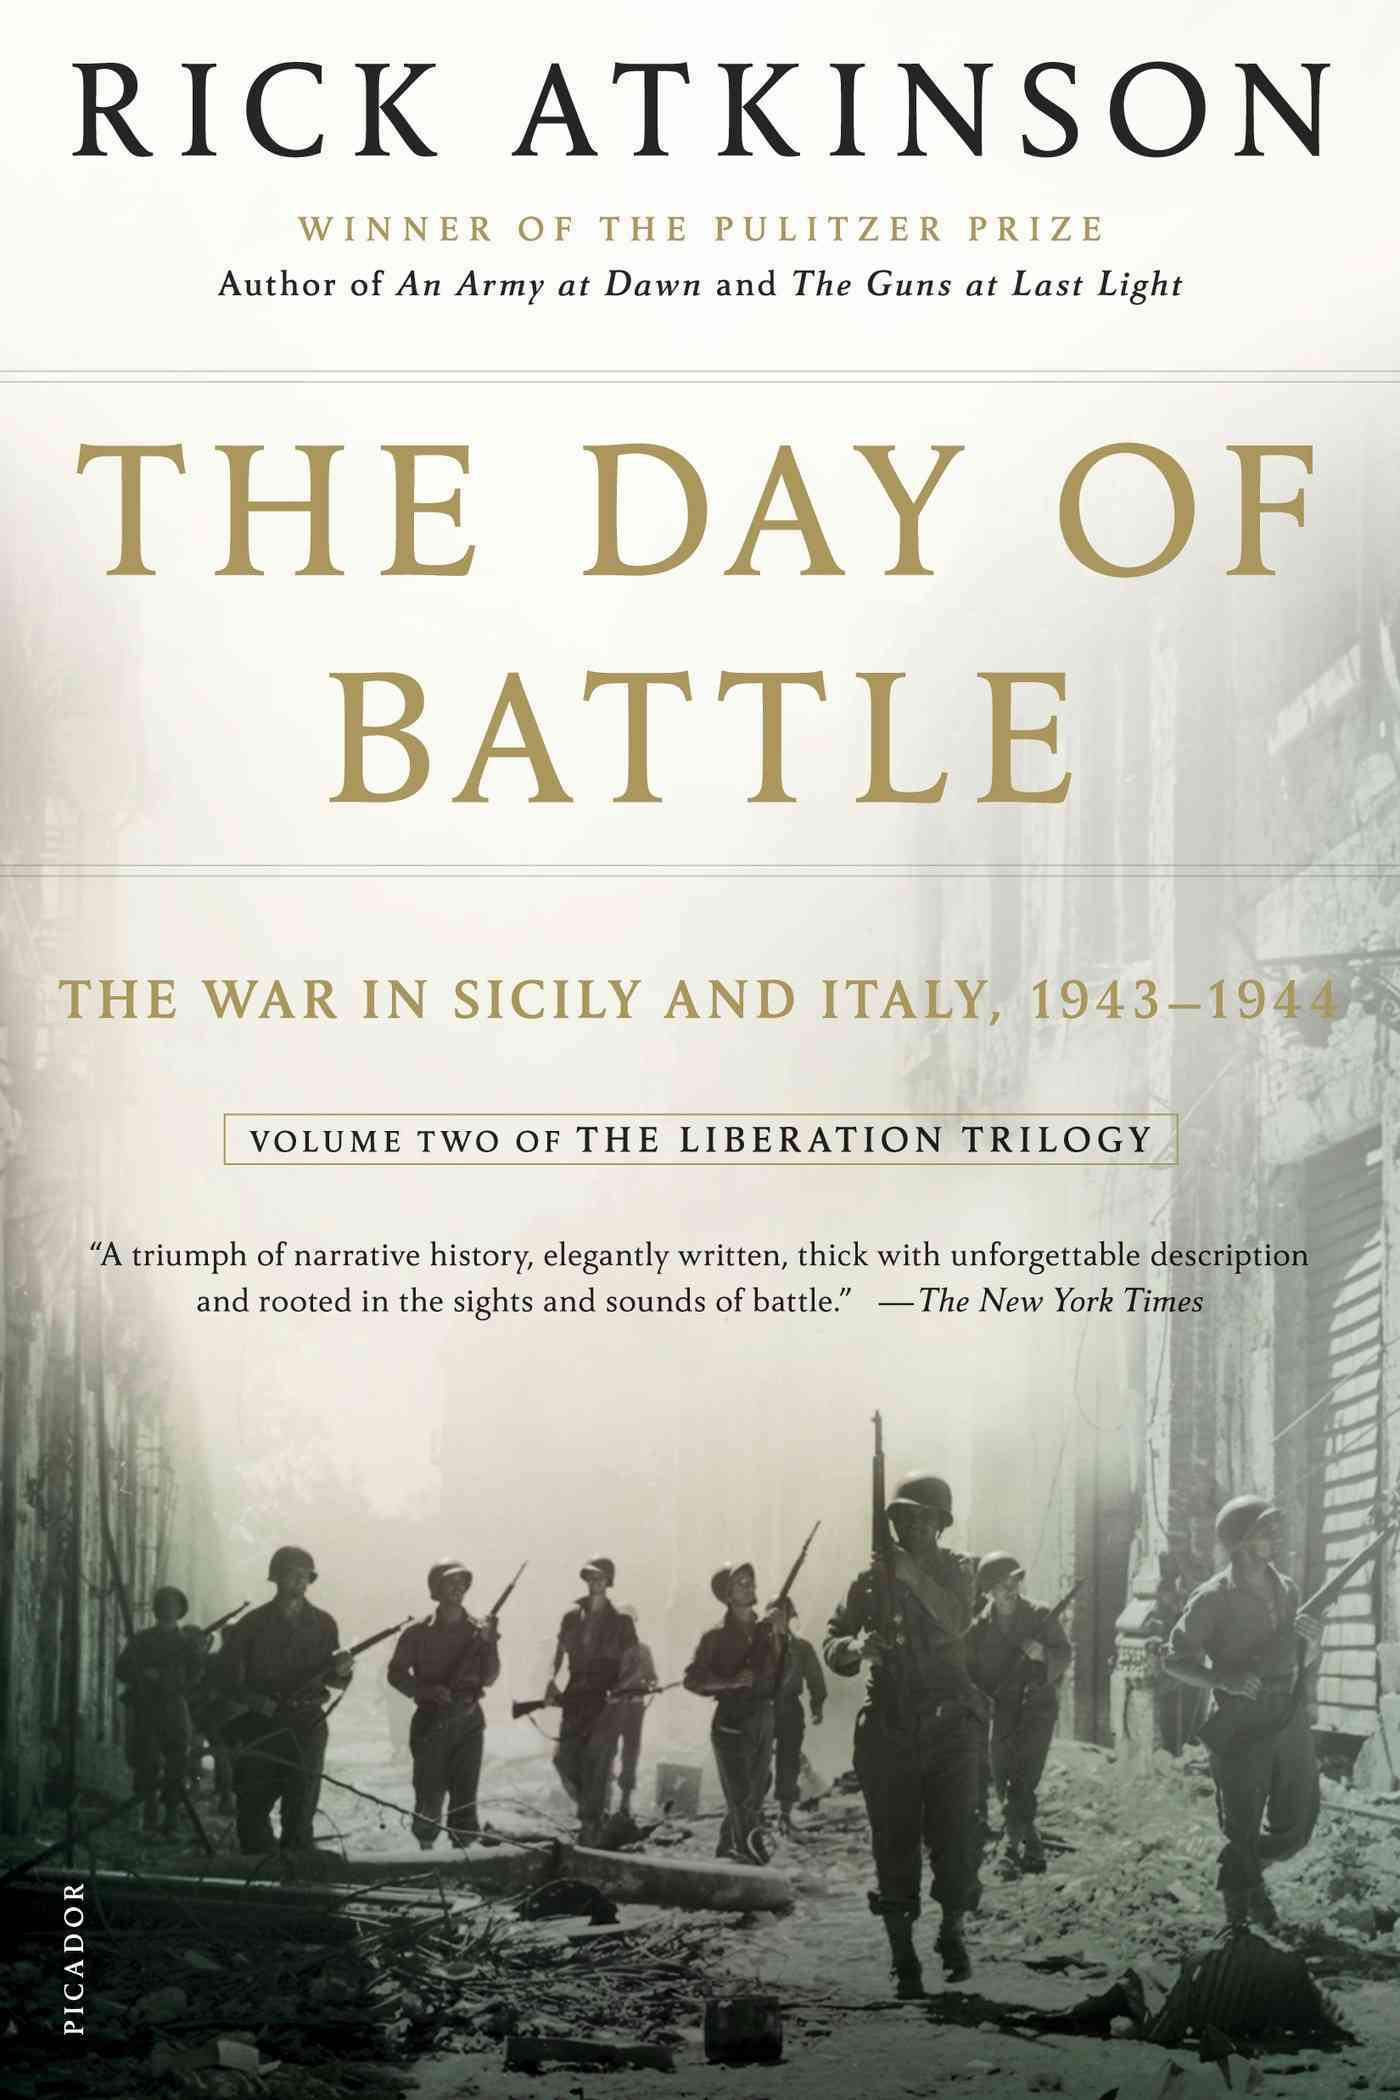 The Day of Battle: The War in Sicily and Italy, 1943-1944 (Paperback)